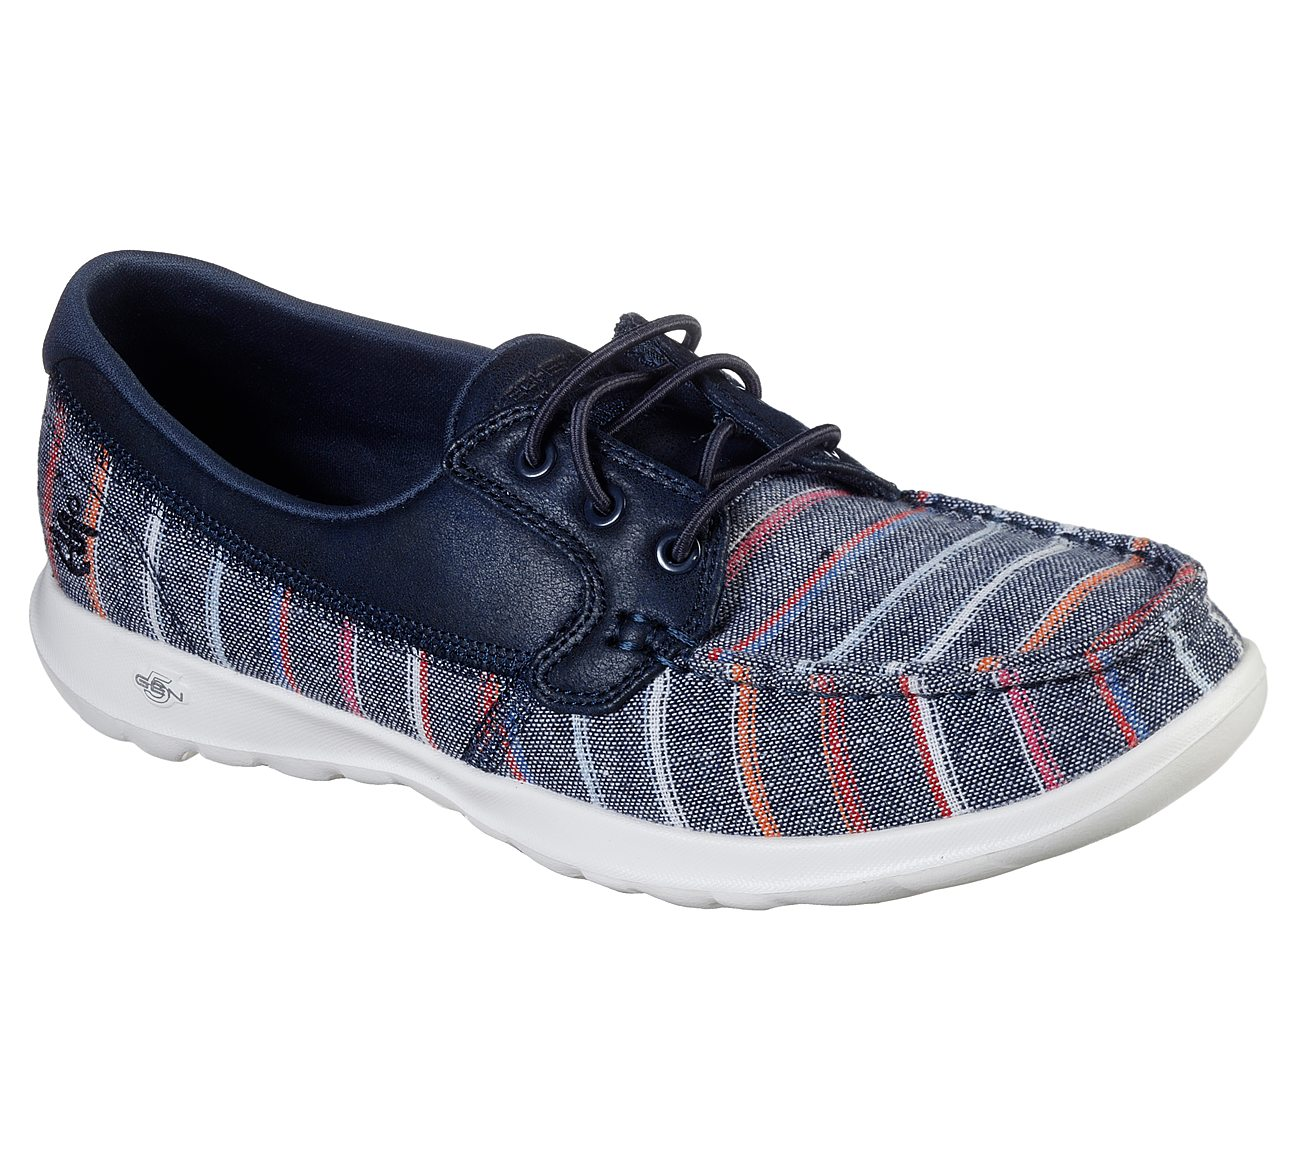 Skechers GOwalk Lite - Beachside